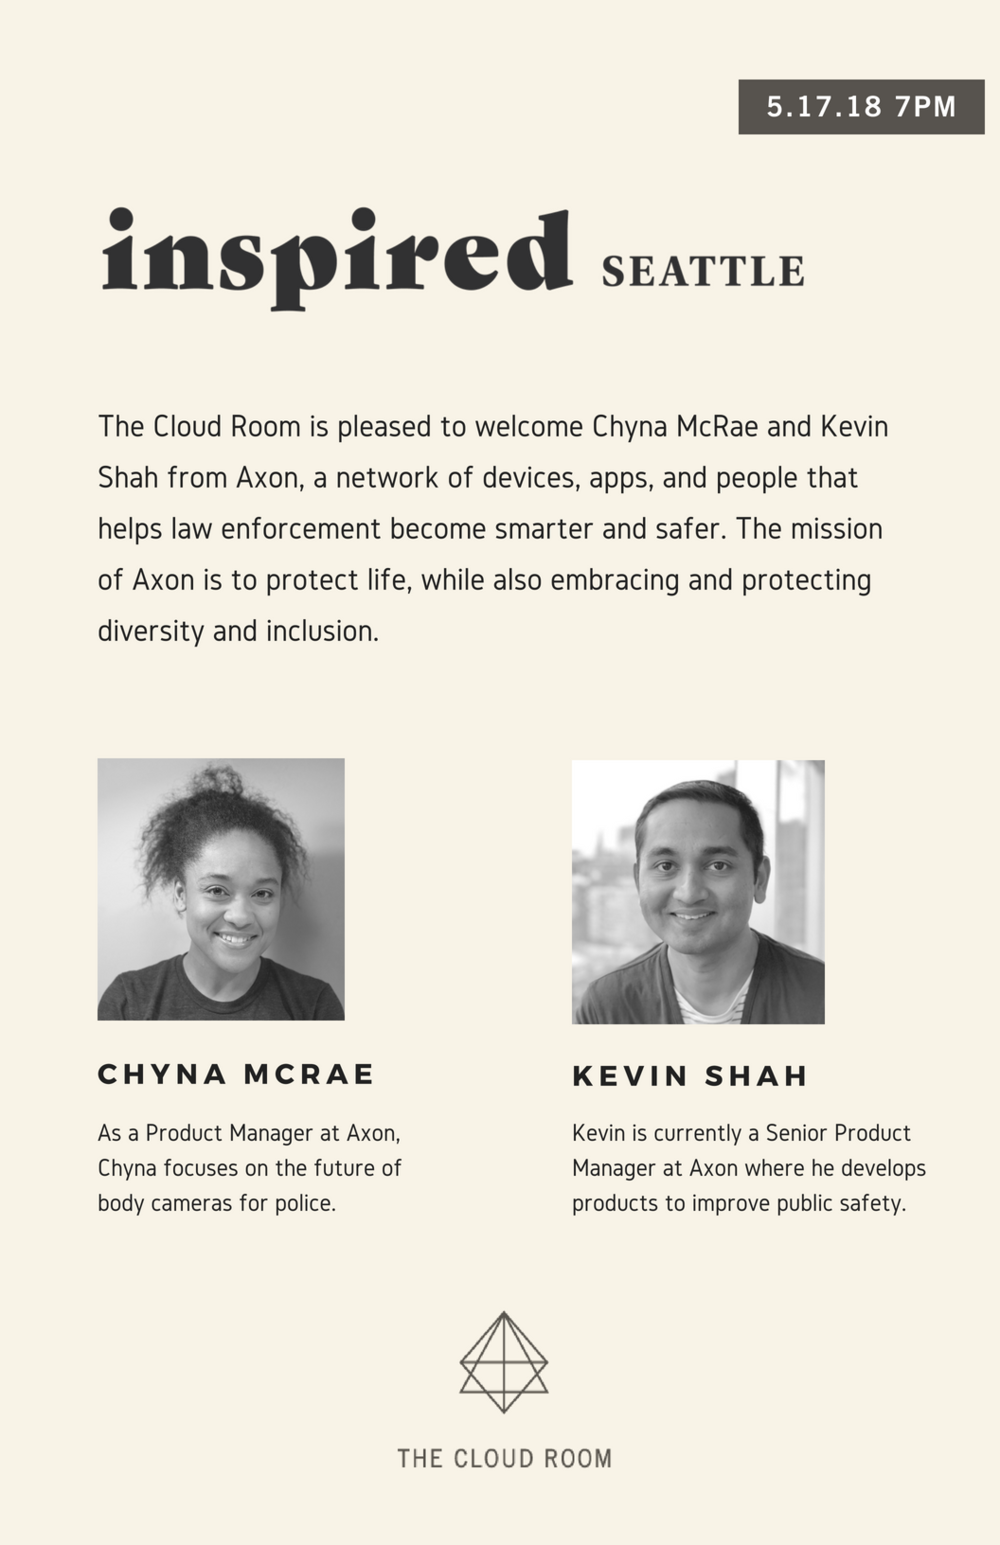 Inspired Seattle: Chyna McRae and Kevin Shah